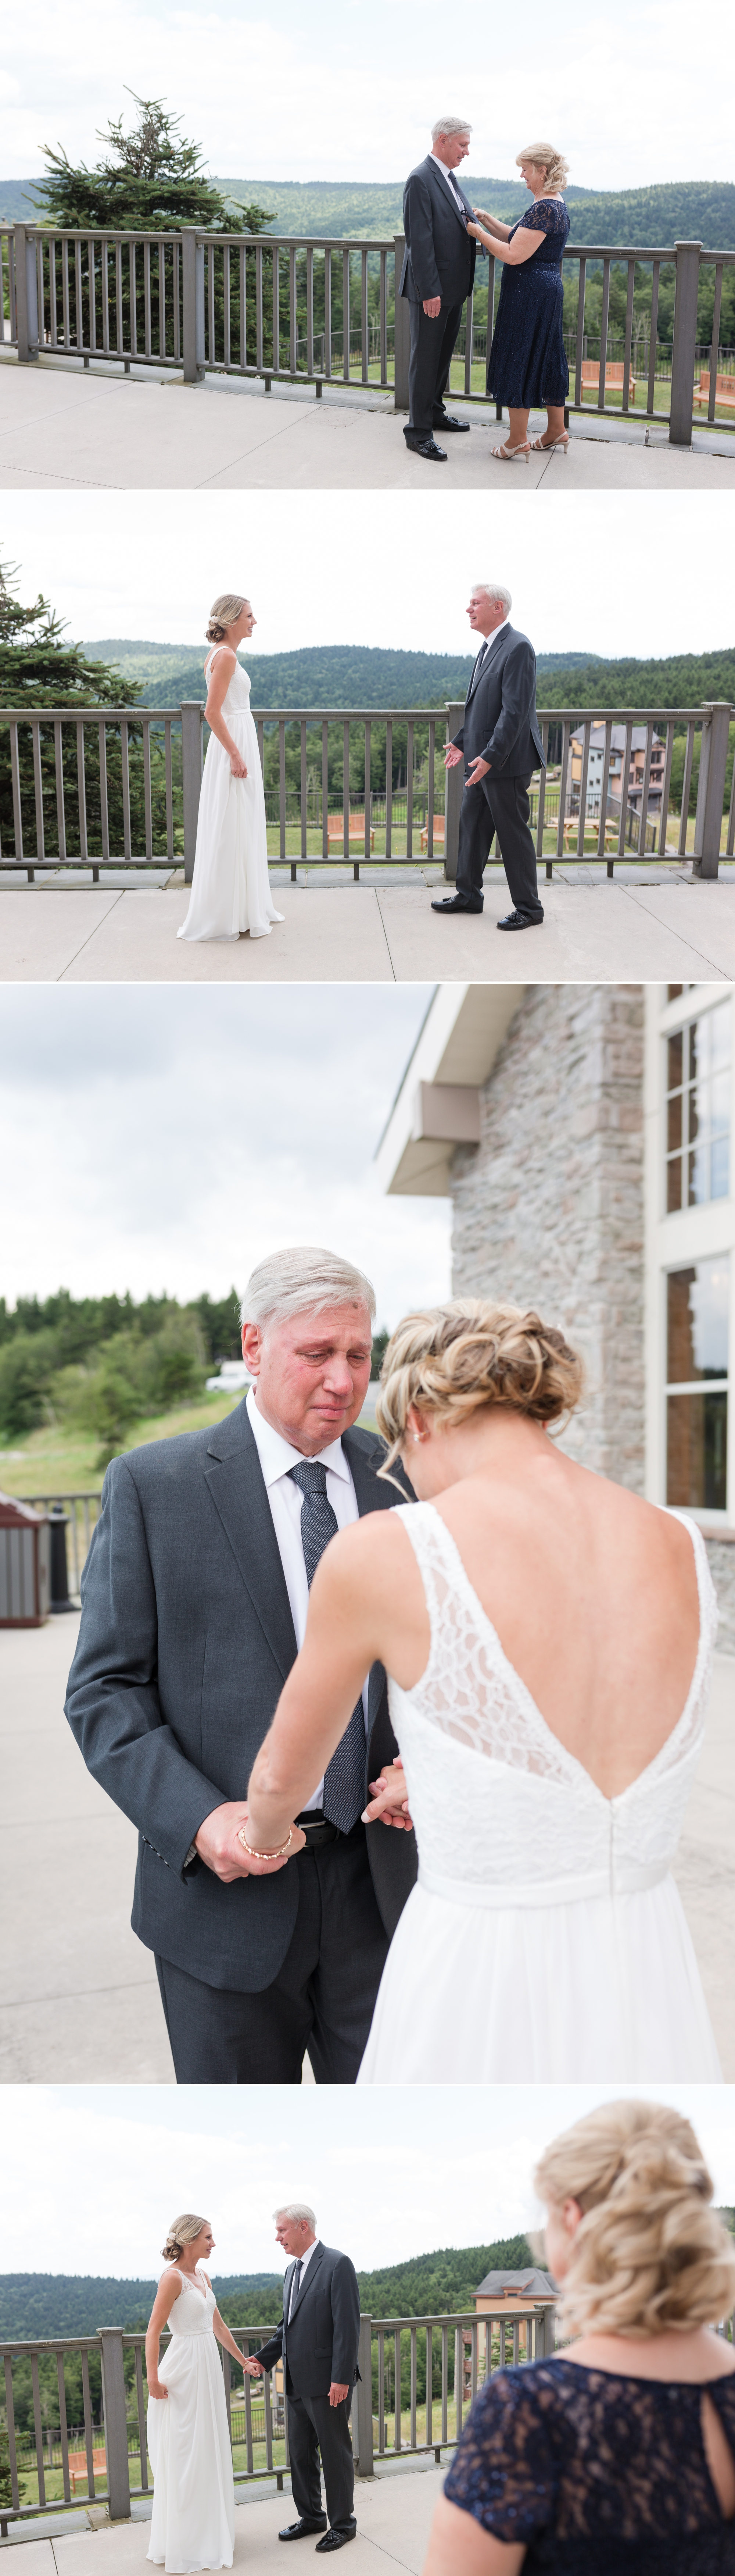 first look with dad, mountain resort wedding